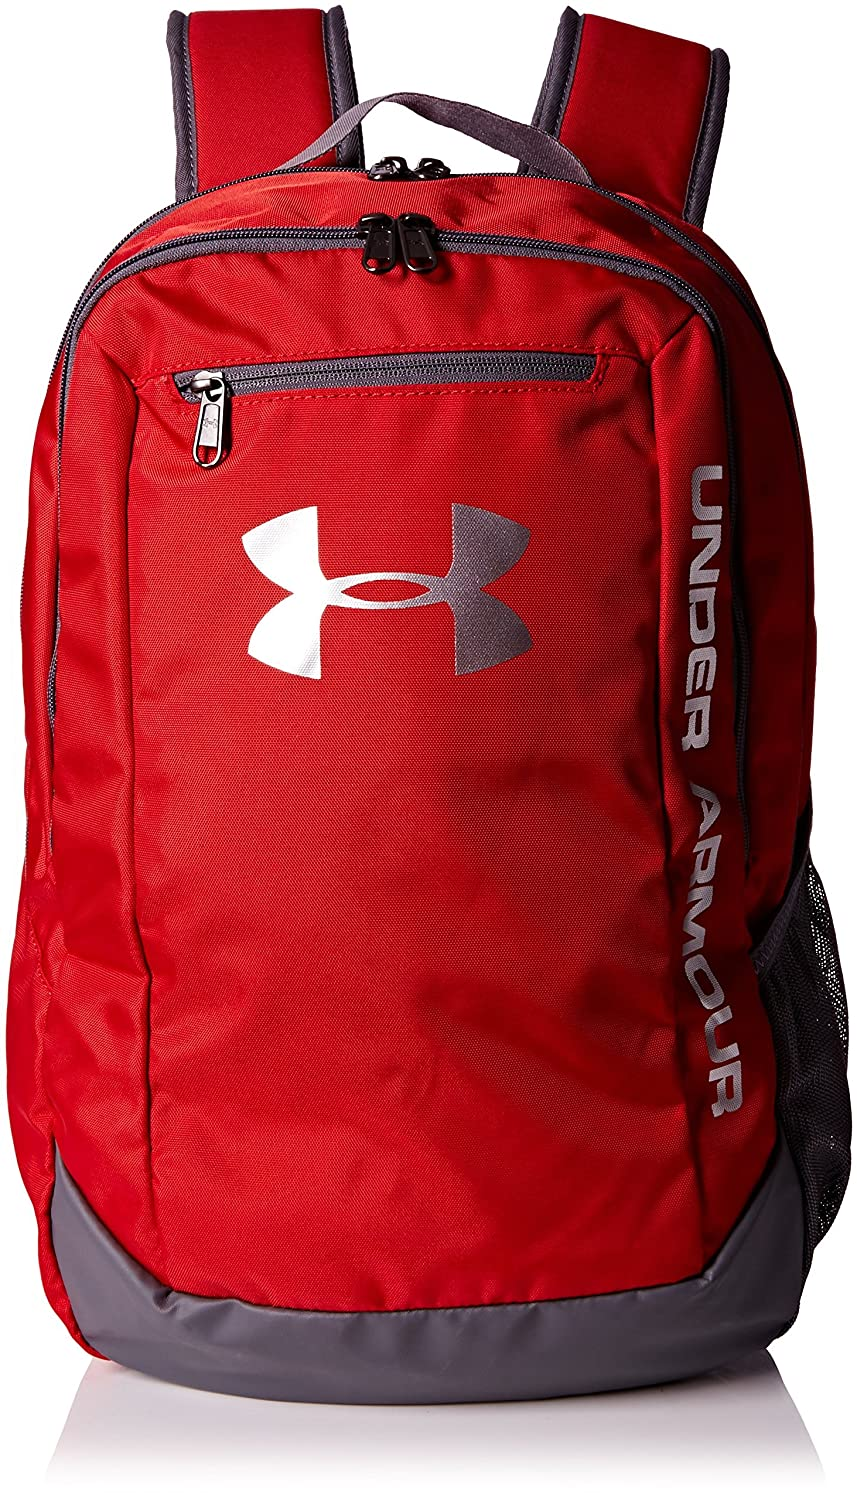 Under Armour Hustle LDWR Backpack 1273274 16PM1273274_1-XXS